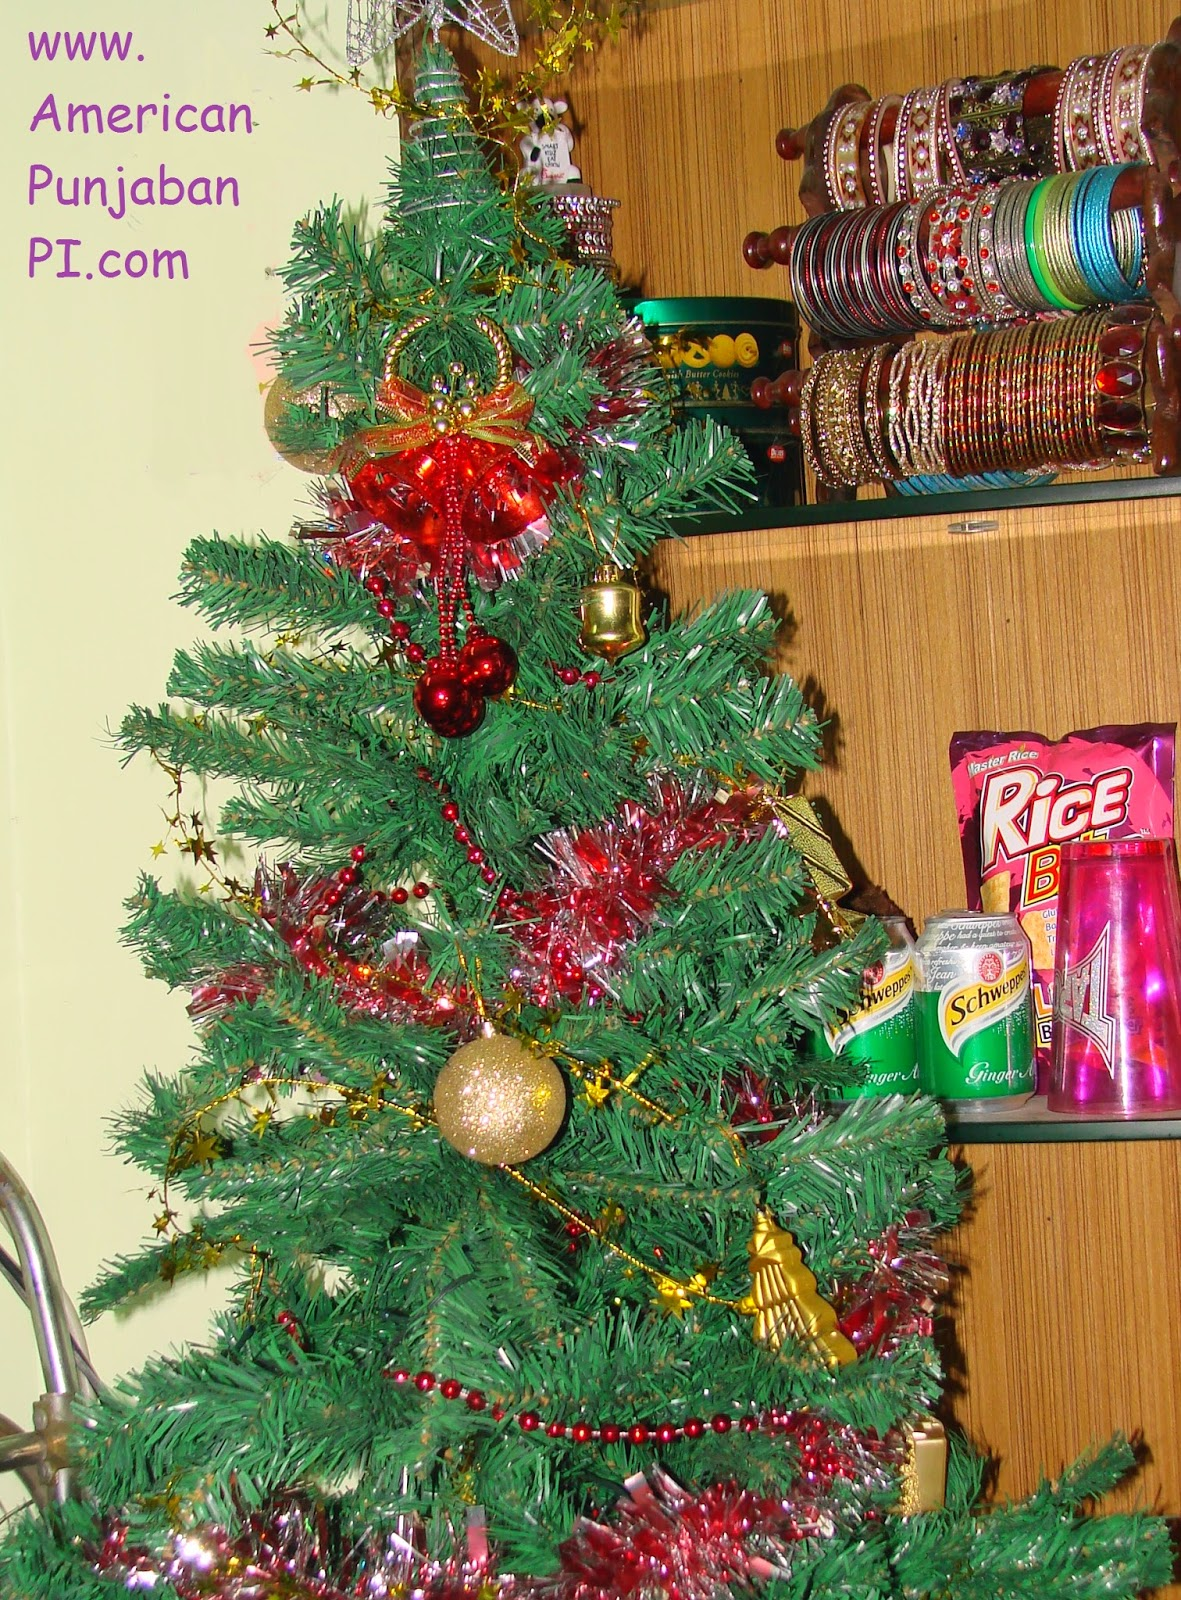 Christmas India Cross cultural marriage